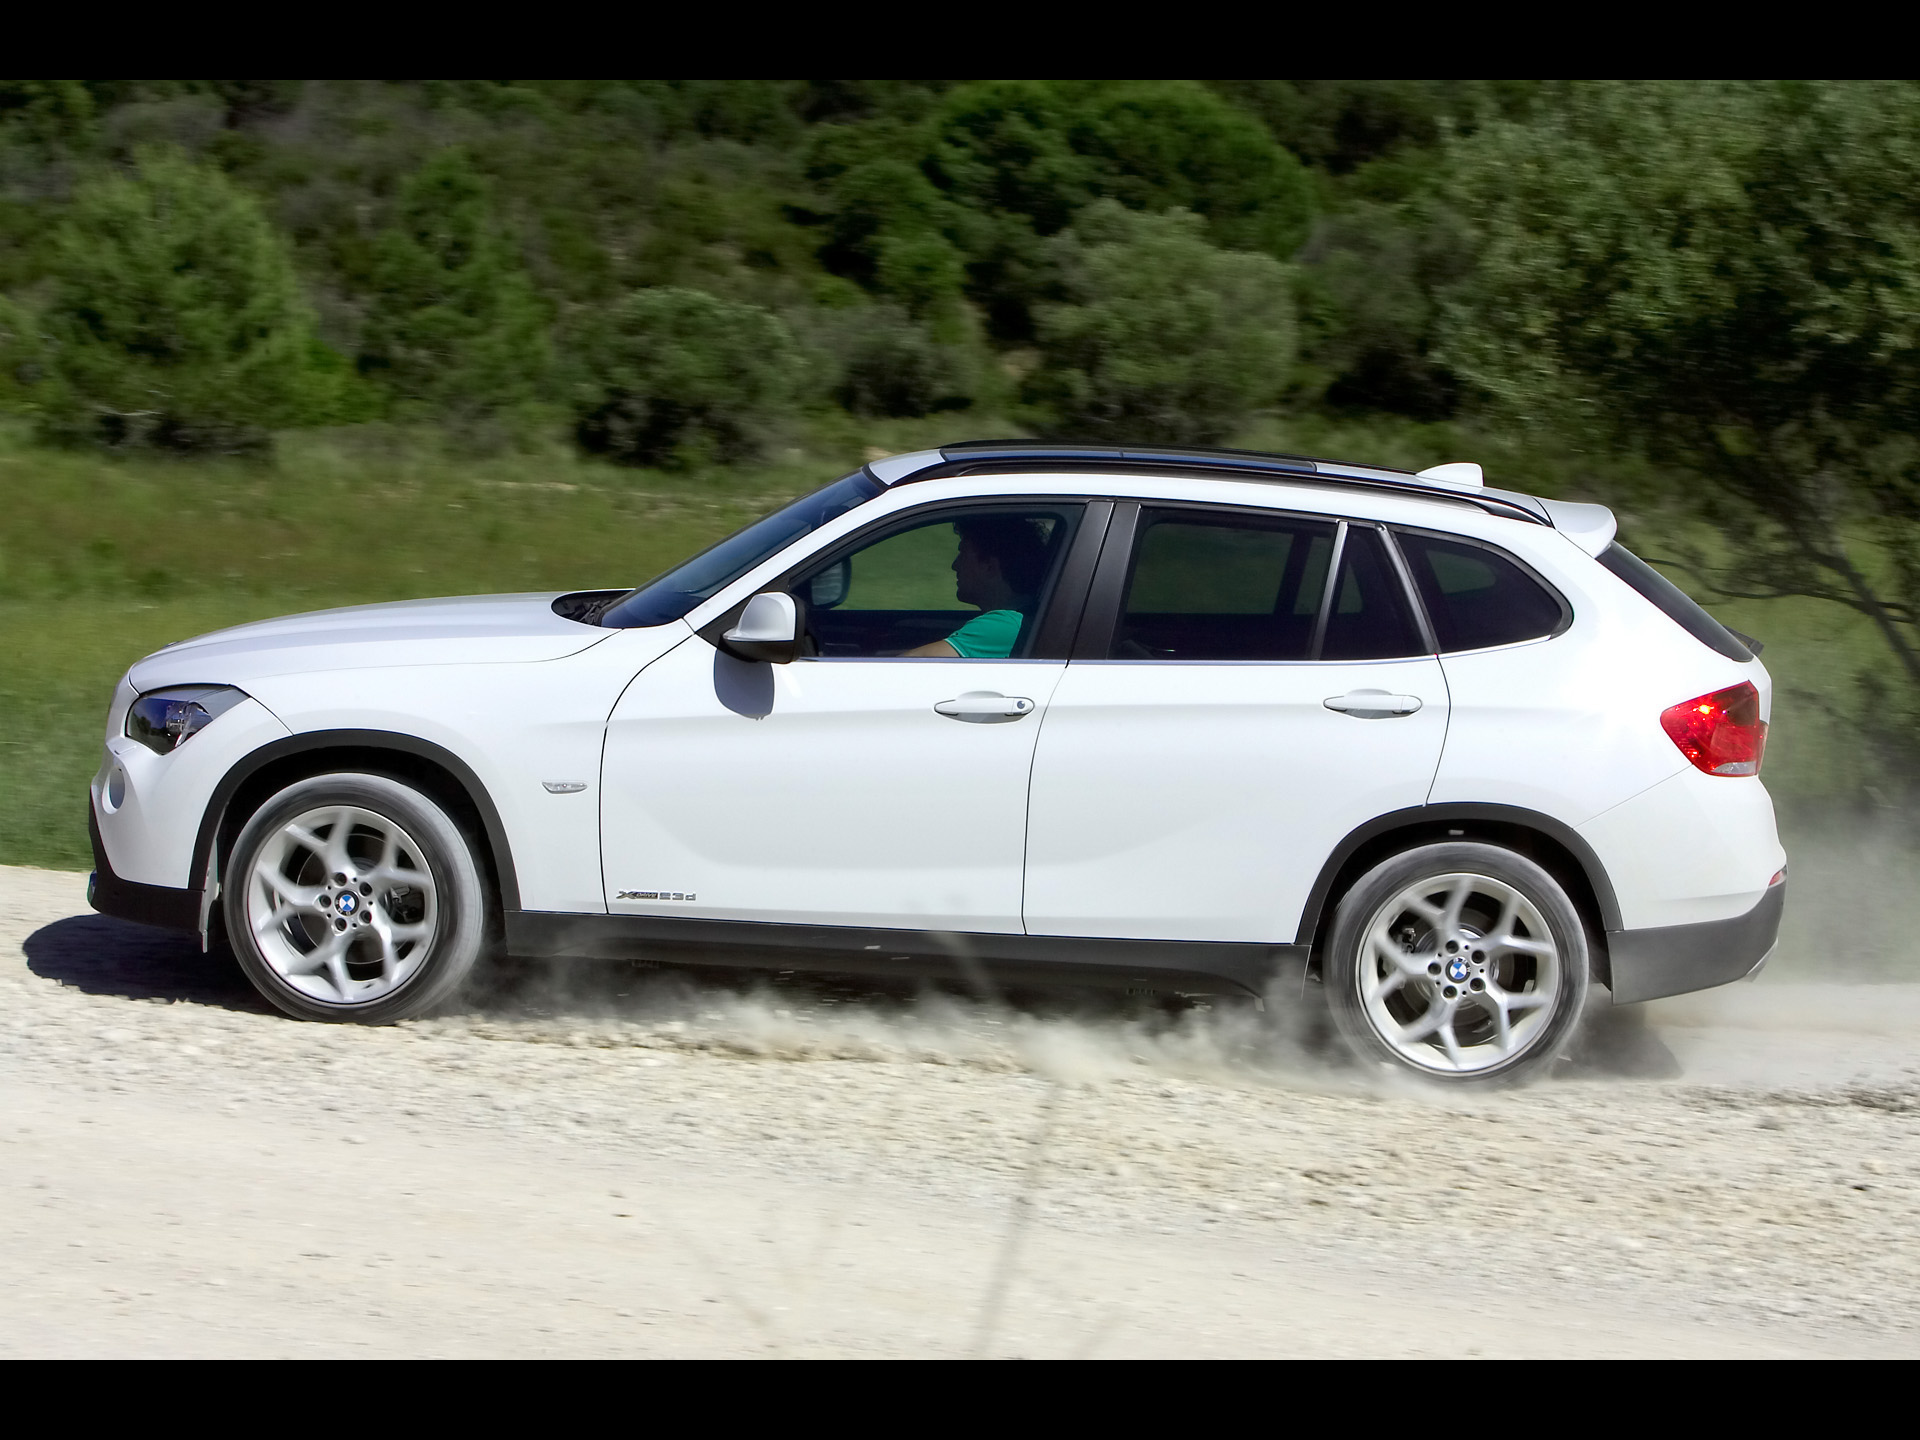 bmw x1 side speed white wallpapers bmw x1 side speed. Black Bedroom Furniture Sets. Home Design Ideas